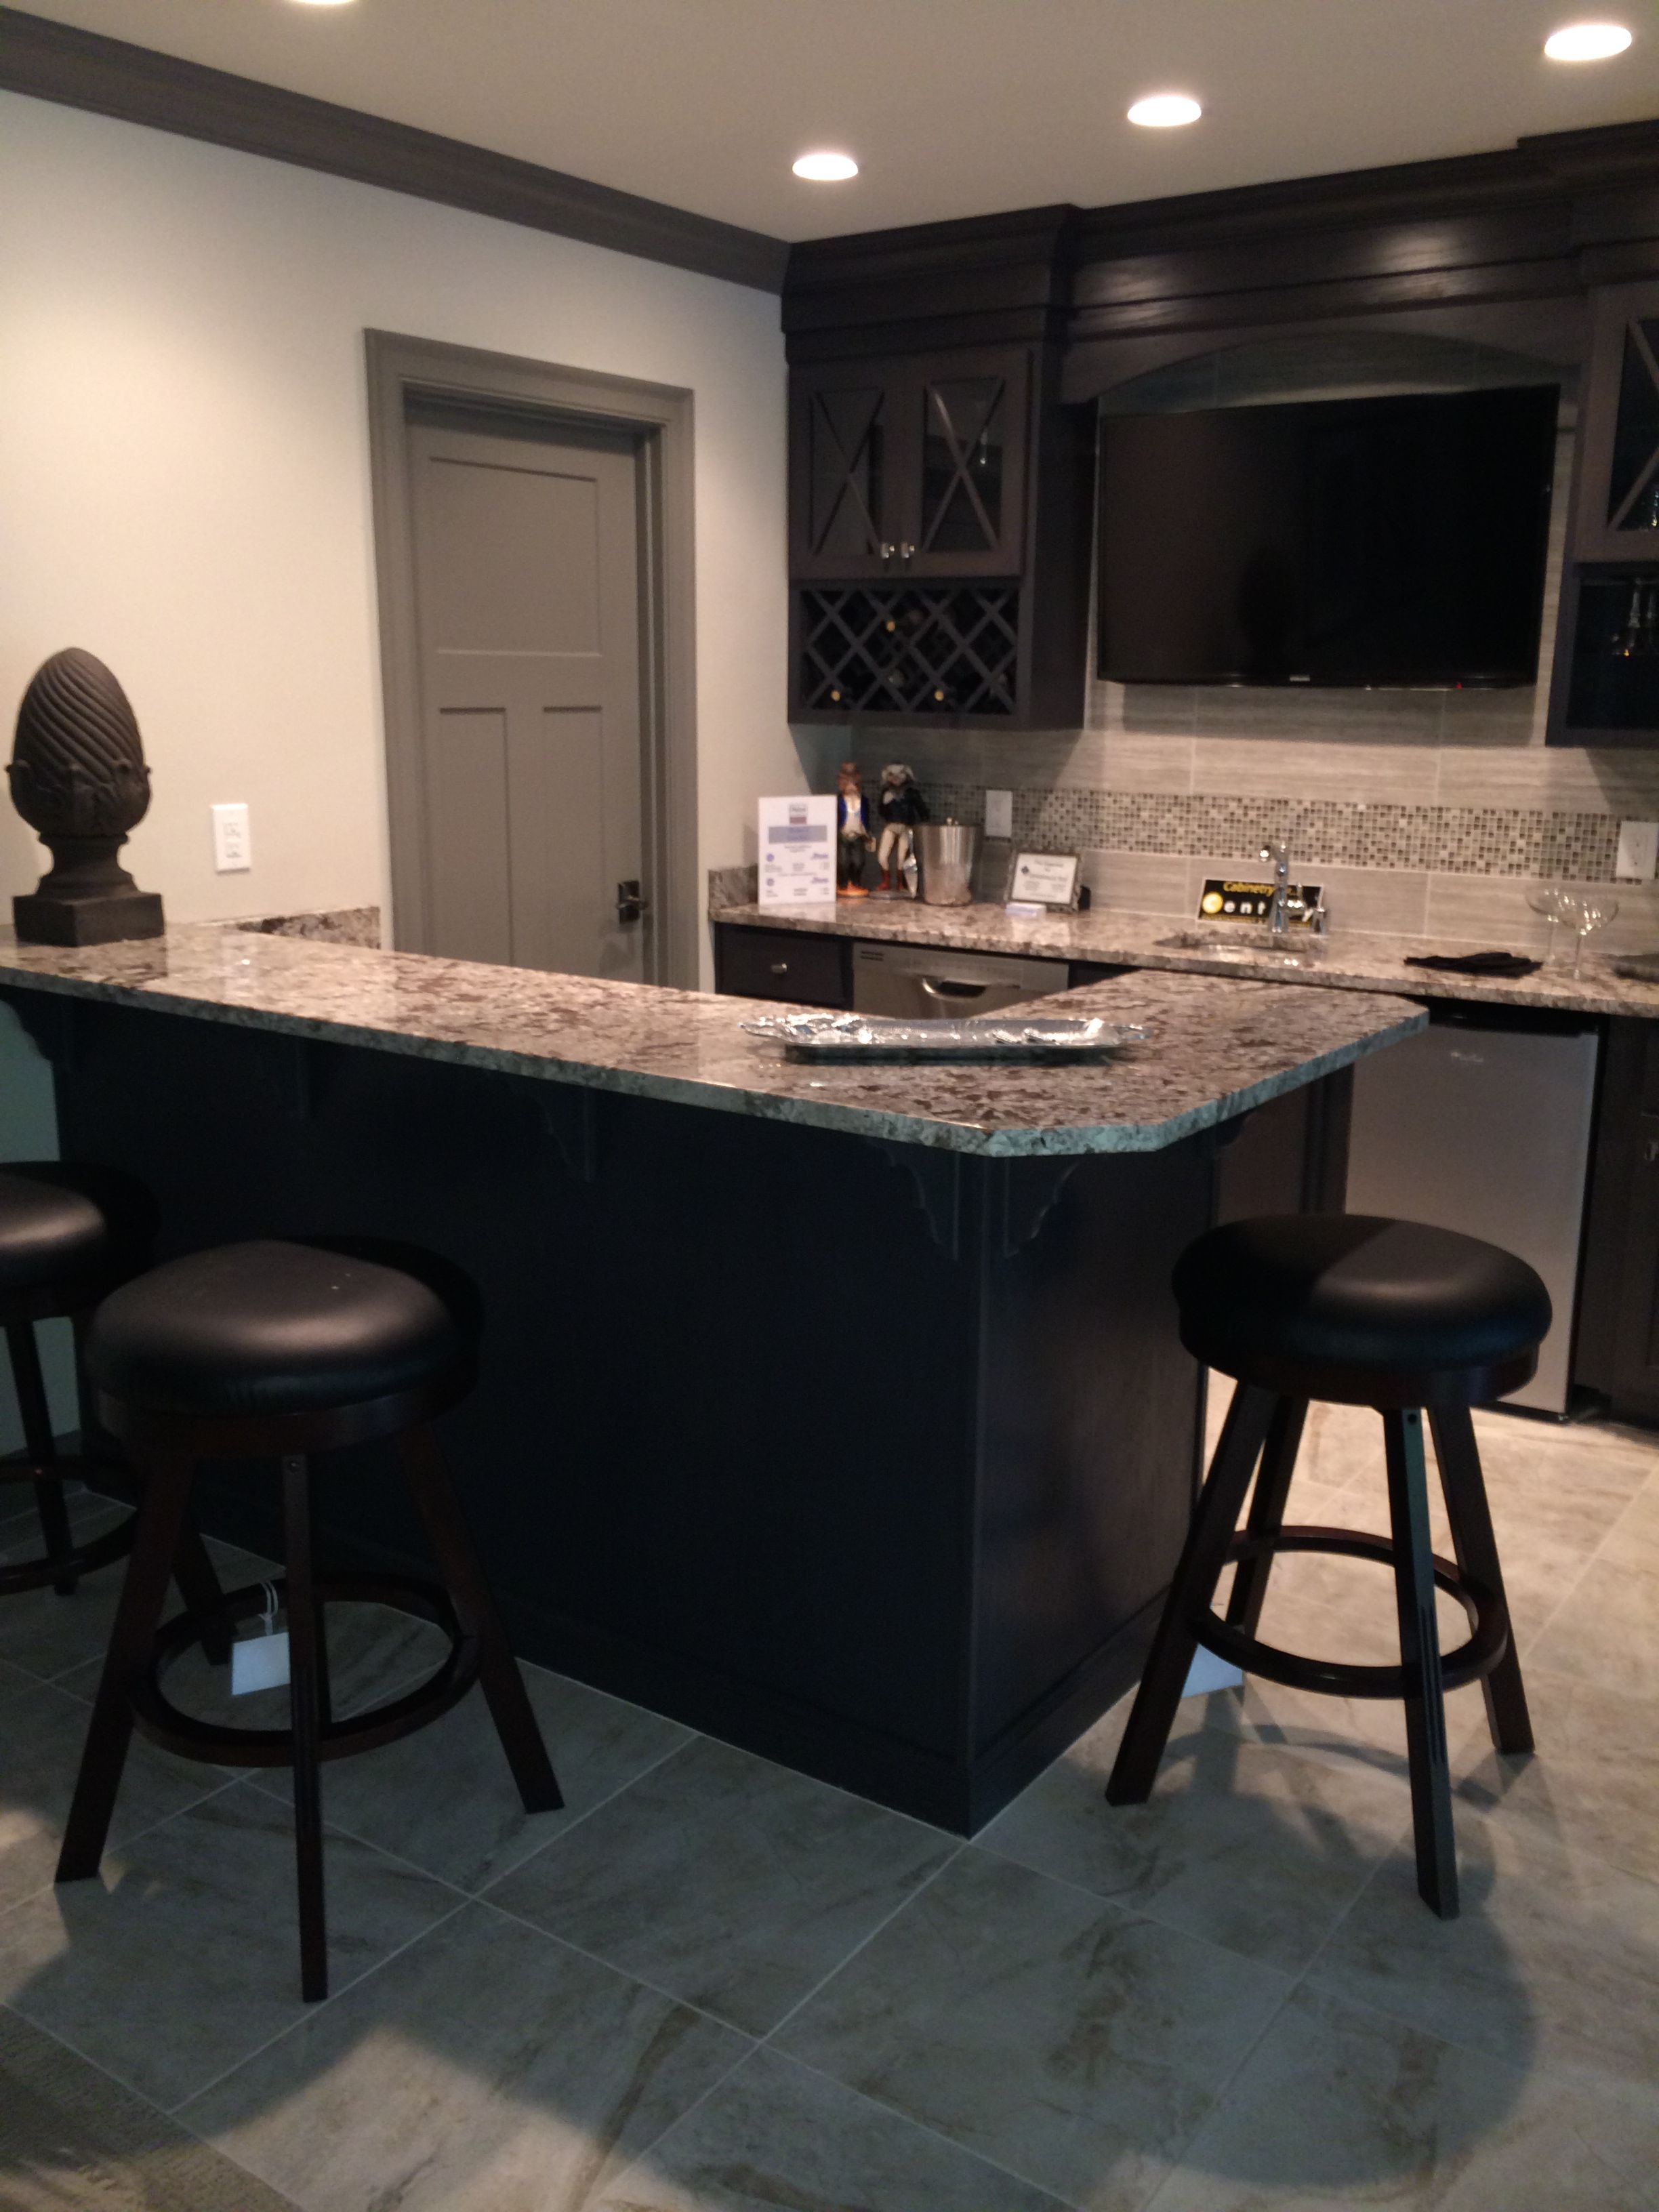 Bianco Antico Granite Countertops With Espresso Cabinets And Grey